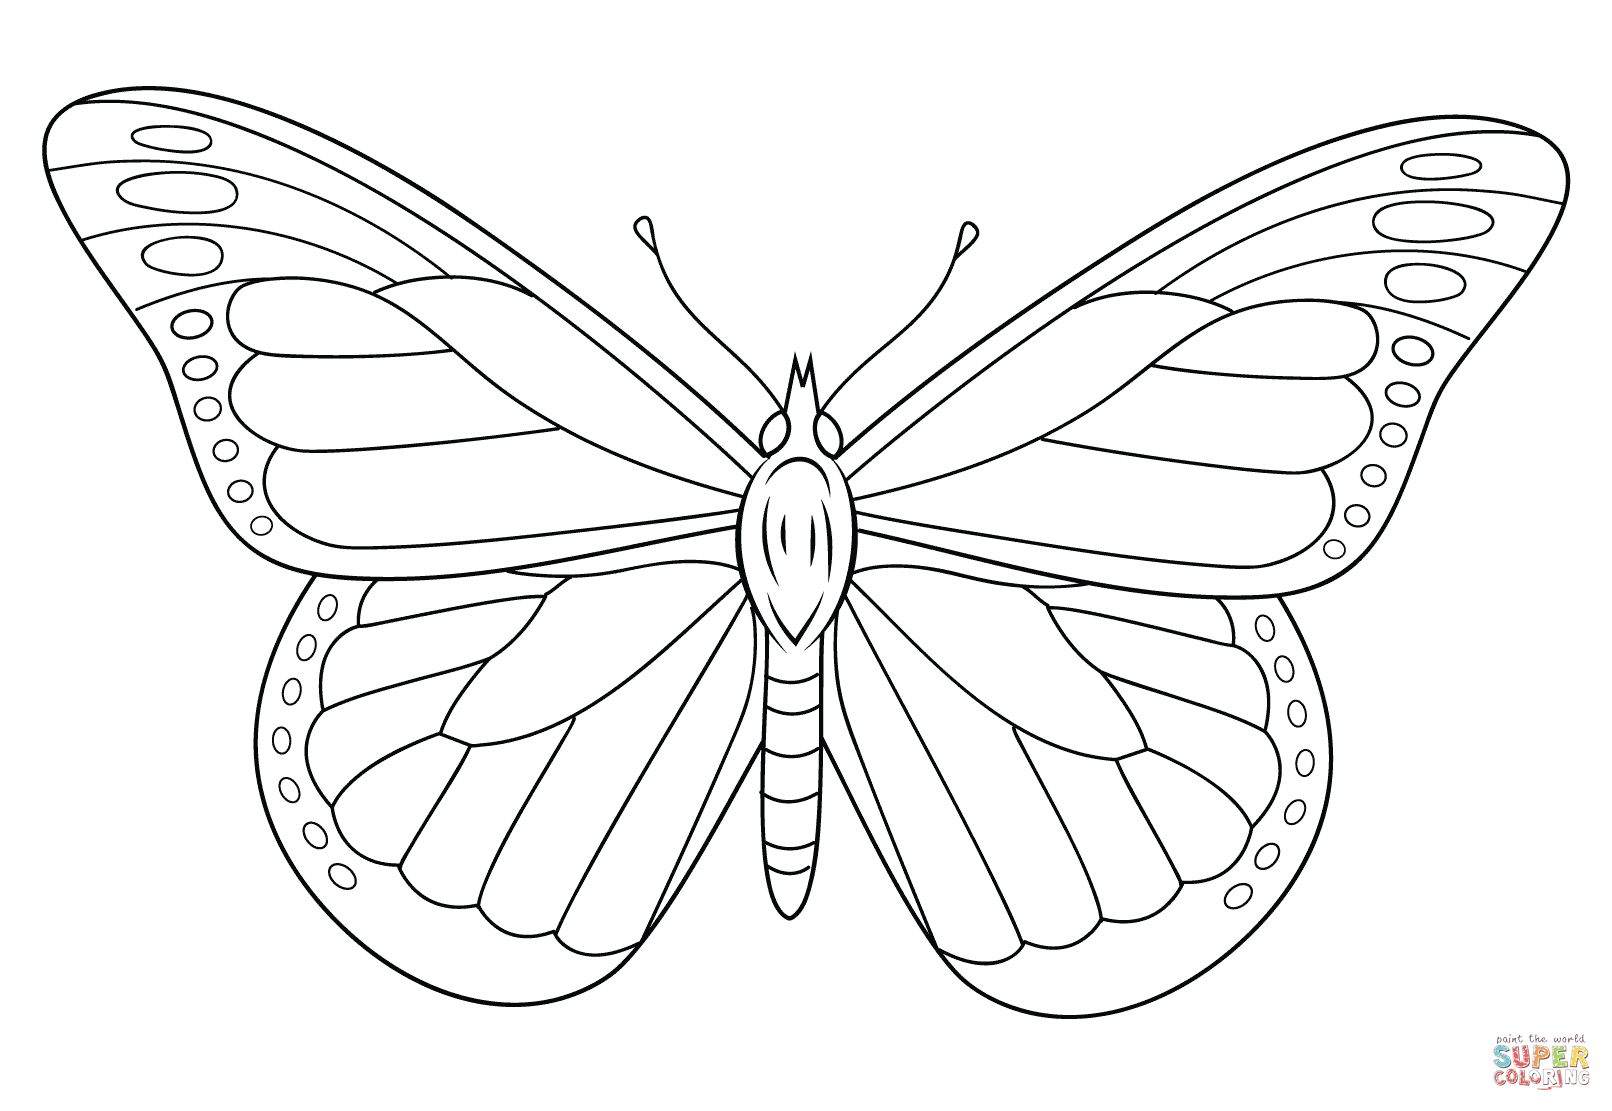 monarch butterfly coloring page monarch butterfly coloring pages to print free coloring butterfly coloring page monarch